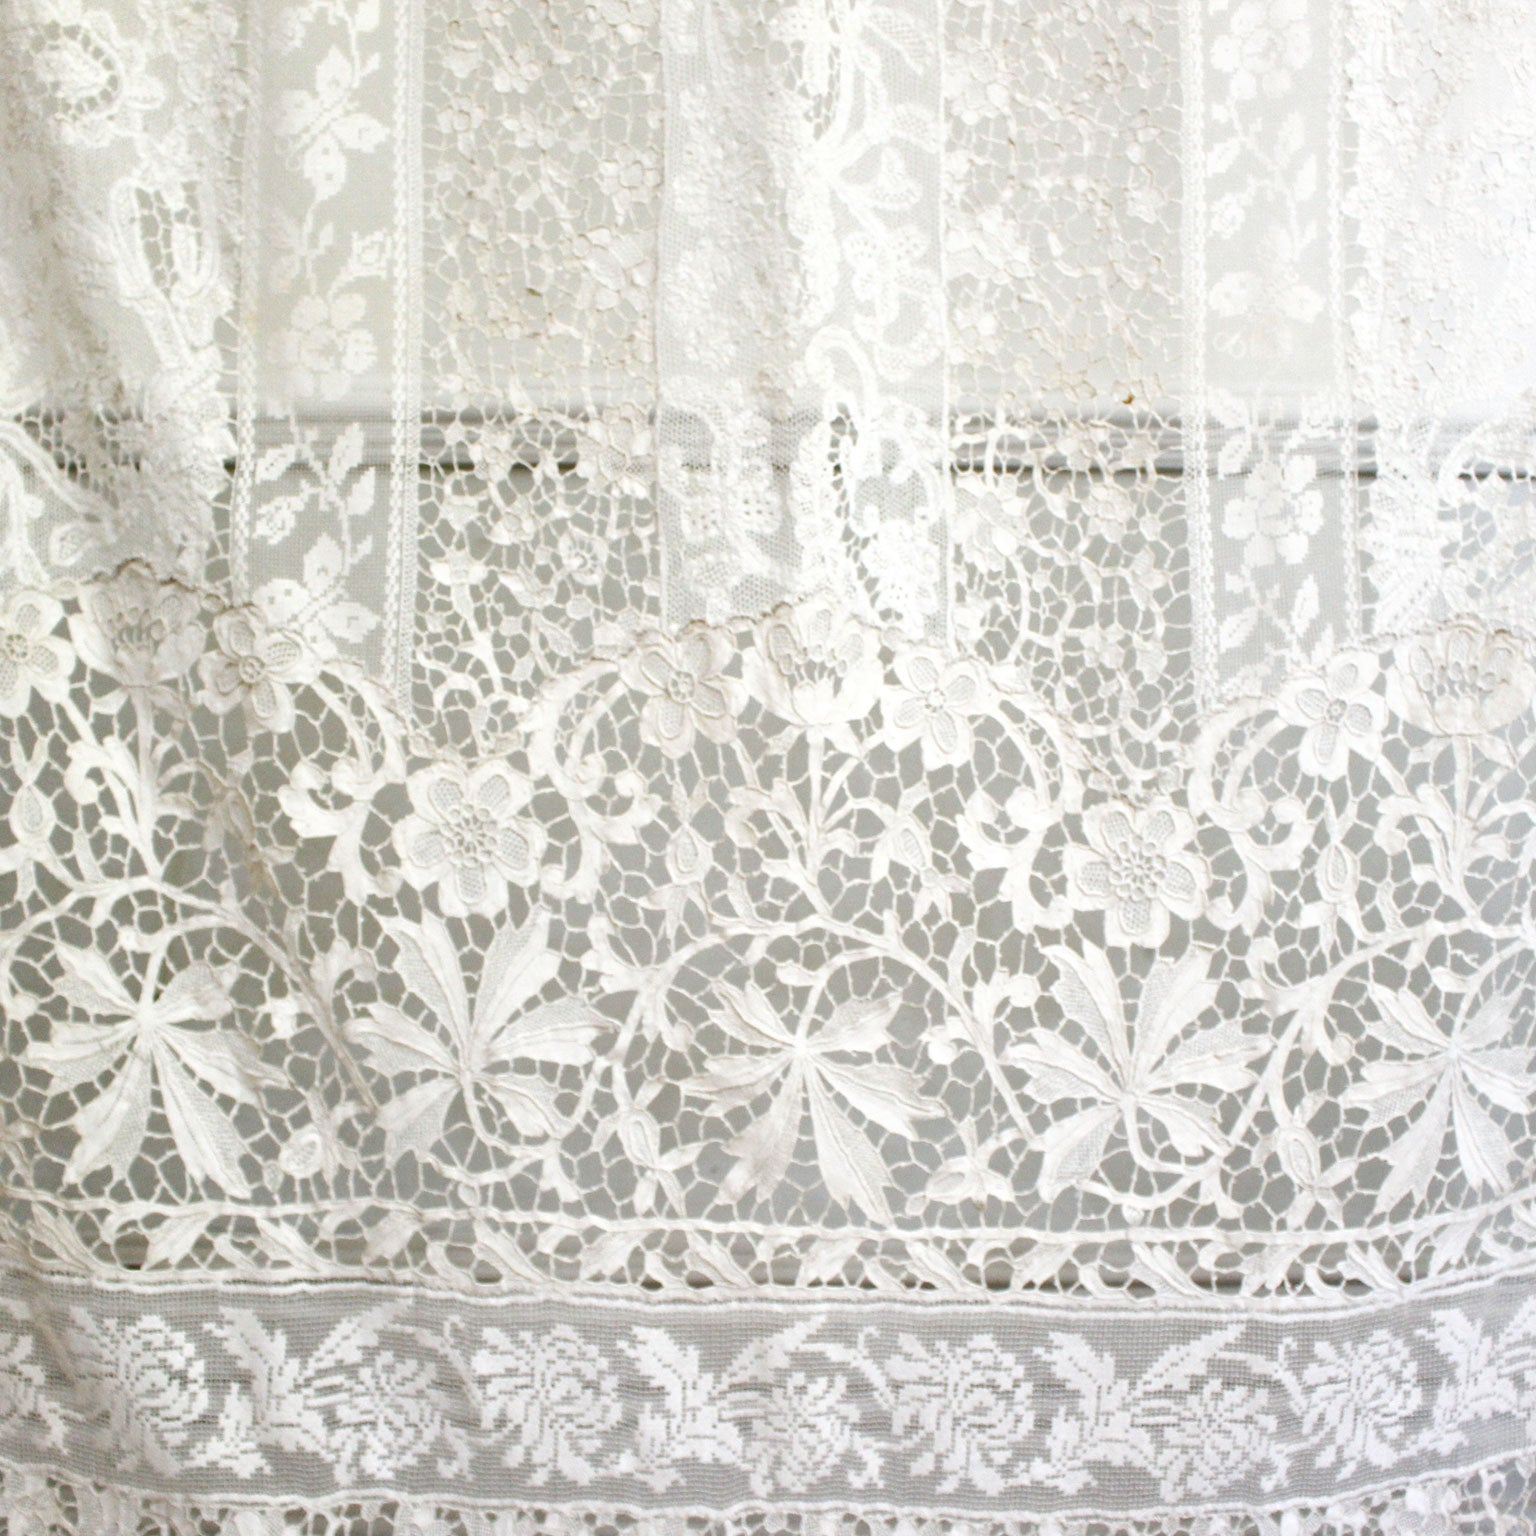 French Lace Curtains Large Pair Of Ornate Antique Hand Made Ivory French Lace Curtains